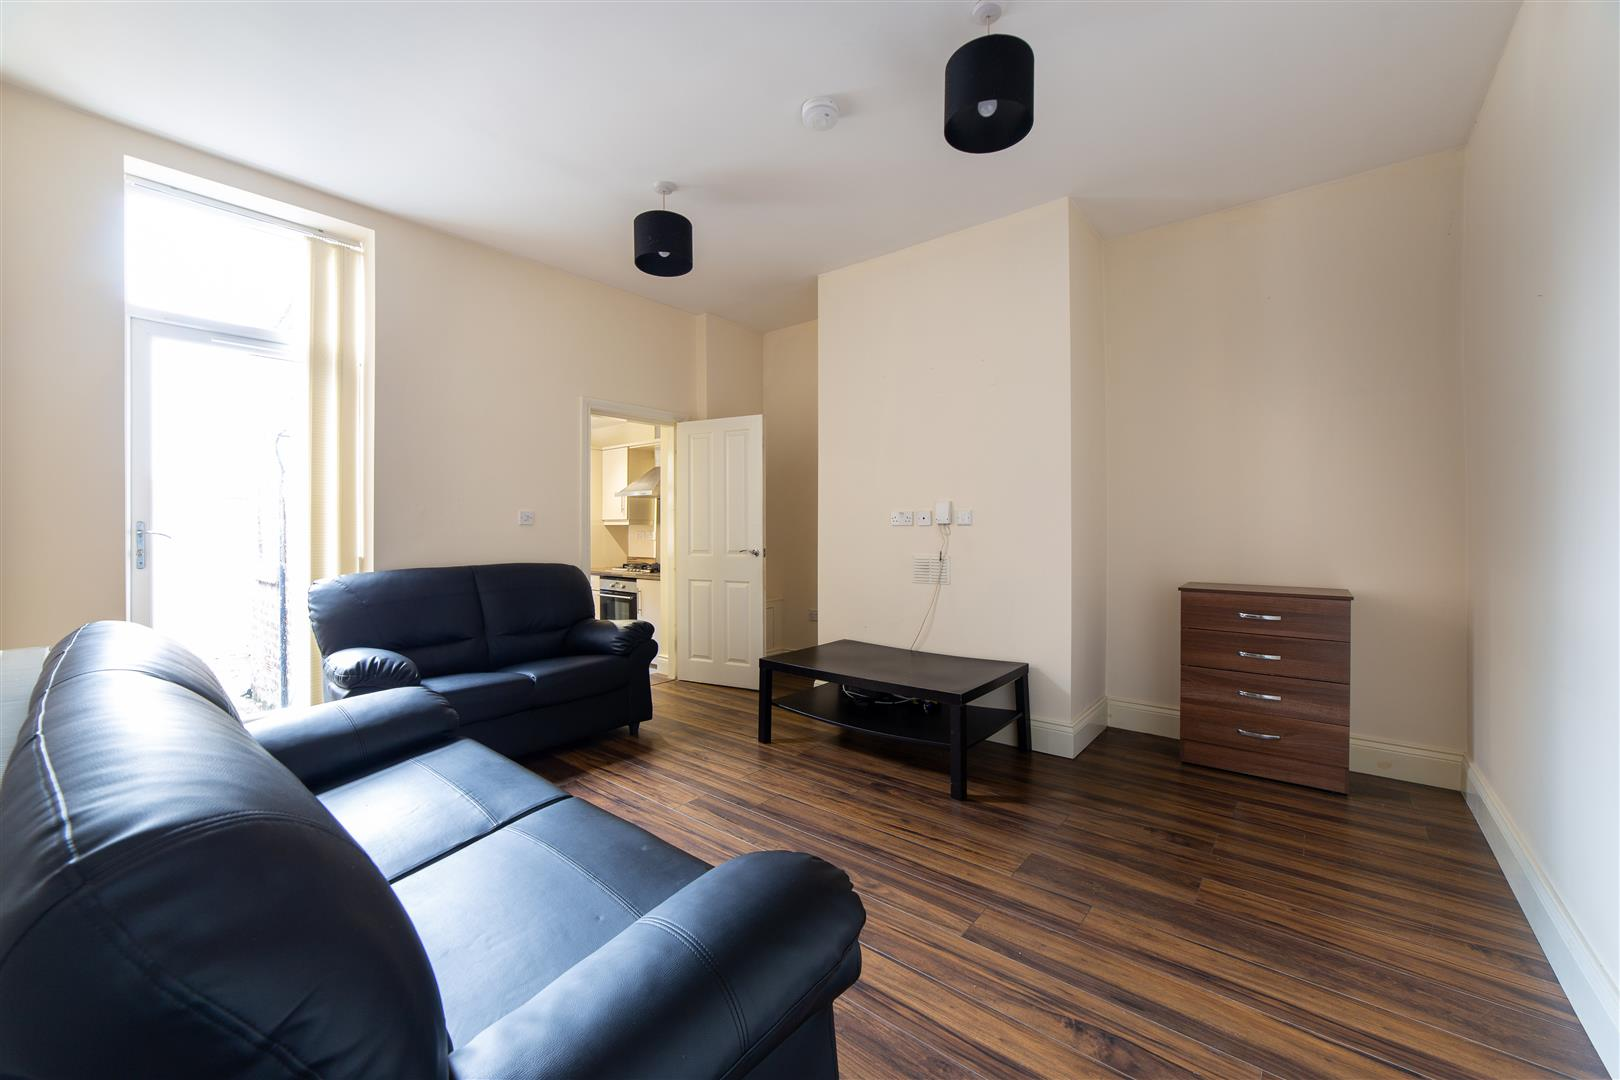 2 bed flat to rent in Newcastle Upon Tyne, NE6 5DQ - Property Image 1